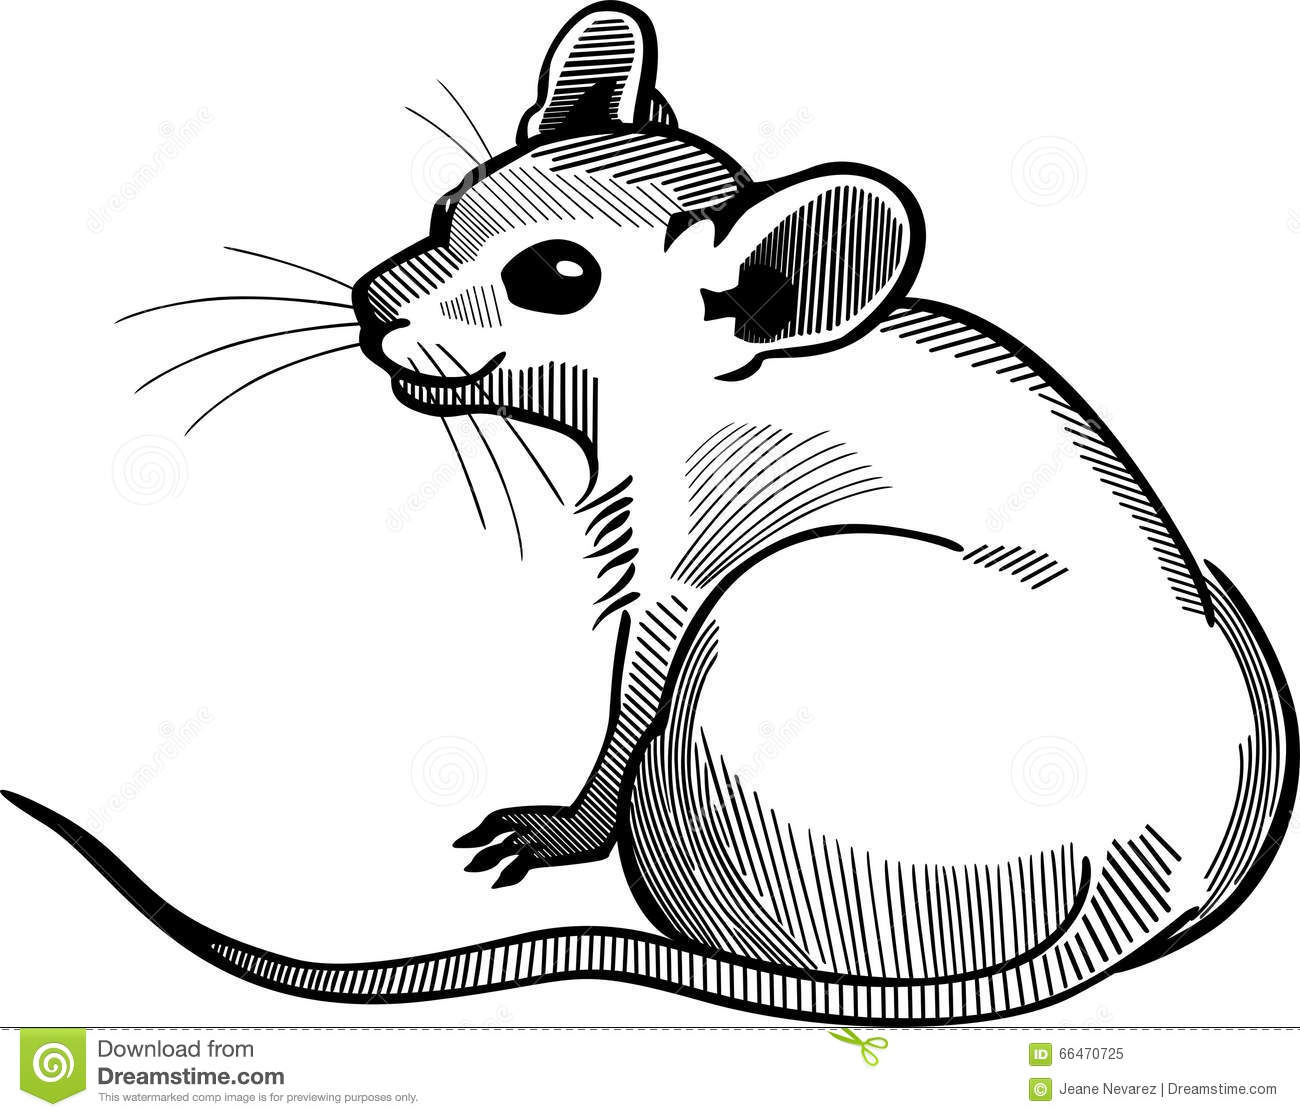 Drawing Lines With Mouse C : Mouse sitting stock vector illustration of white tail